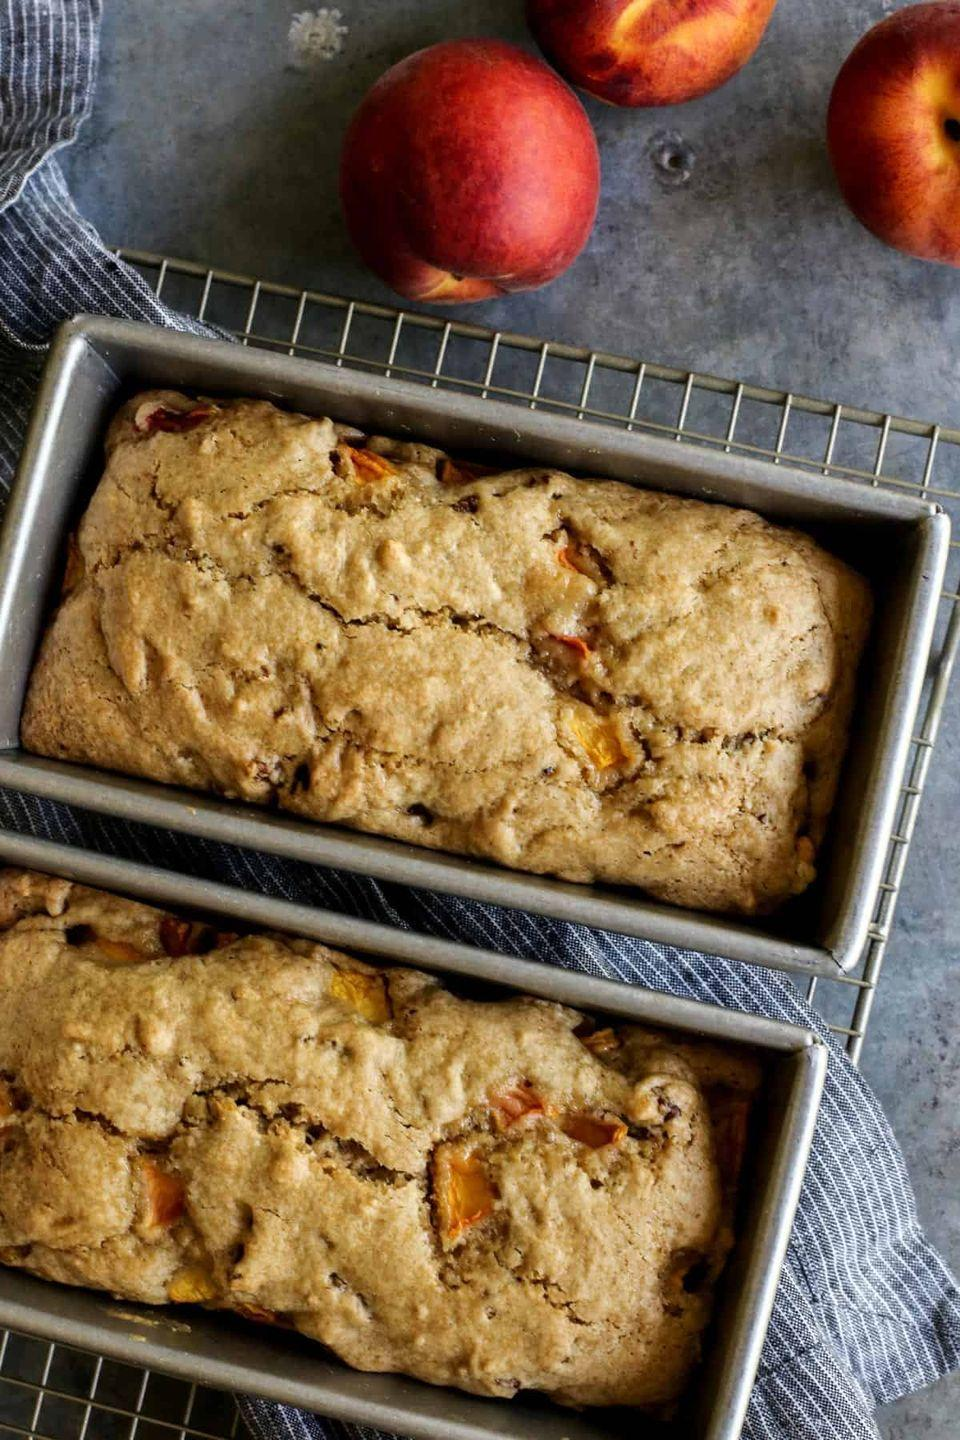 """<p>If you love a good quick bread, then you'll love this delicious peach bread. It's a great way to use over-ripe peaches. <br></p><p><strong>Get the recipe at <a href=""""https://www.afarmgirlsdabbles.com/peach-bread/"""" rel=""""nofollow noopener"""" target=""""_blank"""" data-ylk=""""slk:A Farmgirl's Dabbles"""" class=""""link rapid-noclick-resp"""">A Farmgirl's Dabbles</a>.</strong></p><p><a class=""""link rapid-noclick-resp"""" href=""""https://go.redirectingat.com?id=74968X1596630&url=https%3A%2F%2Fwww.walmart.com%2Fsearch%2F%3Fquery%3Dpioneer%2Bwoman%2Bbaking%2Bpan&sref=https%3A%2F%2Fwww.thepioneerwoman.com%2Ffood-cooking%2Frecipes%2Fg36382592%2Fpeach-desserts%2F"""" rel=""""nofollow noopener"""" target=""""_blank"""" data-ylk=""""slk:SHOP BAKING PANS"""">SHOP BAKING PANS</a></p>"""